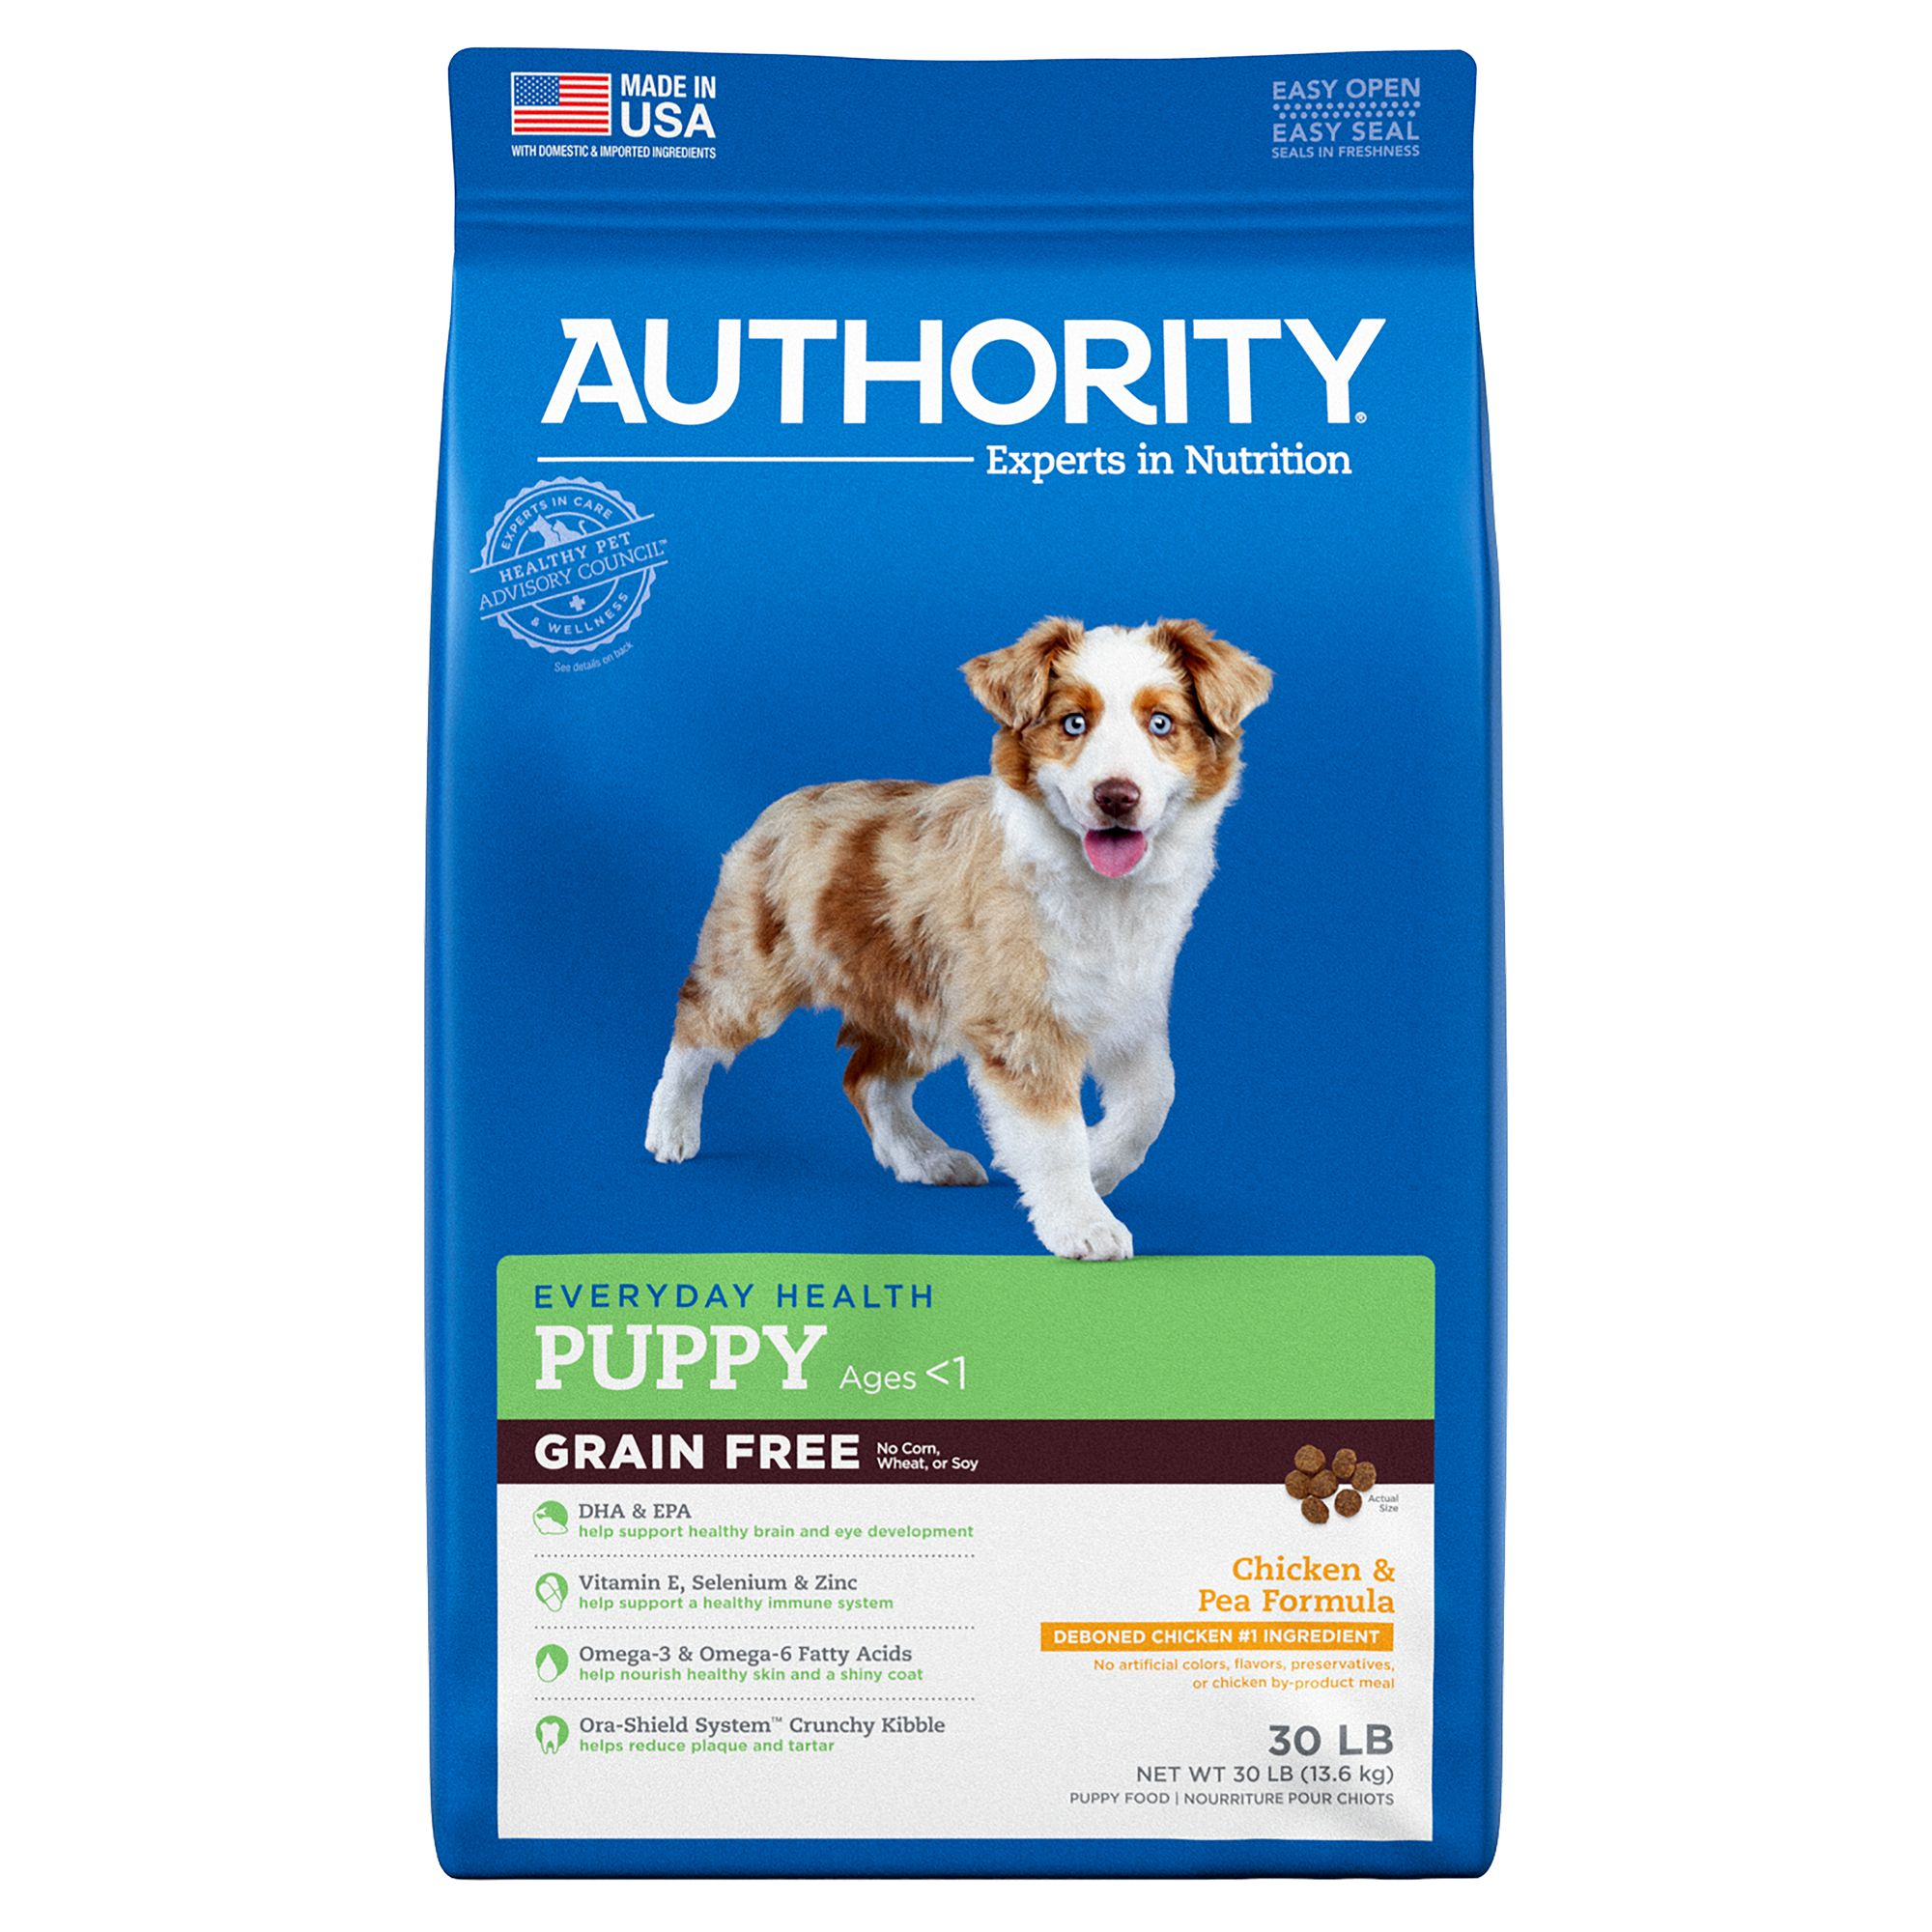 Authority puppy food grain free chicken and pea size